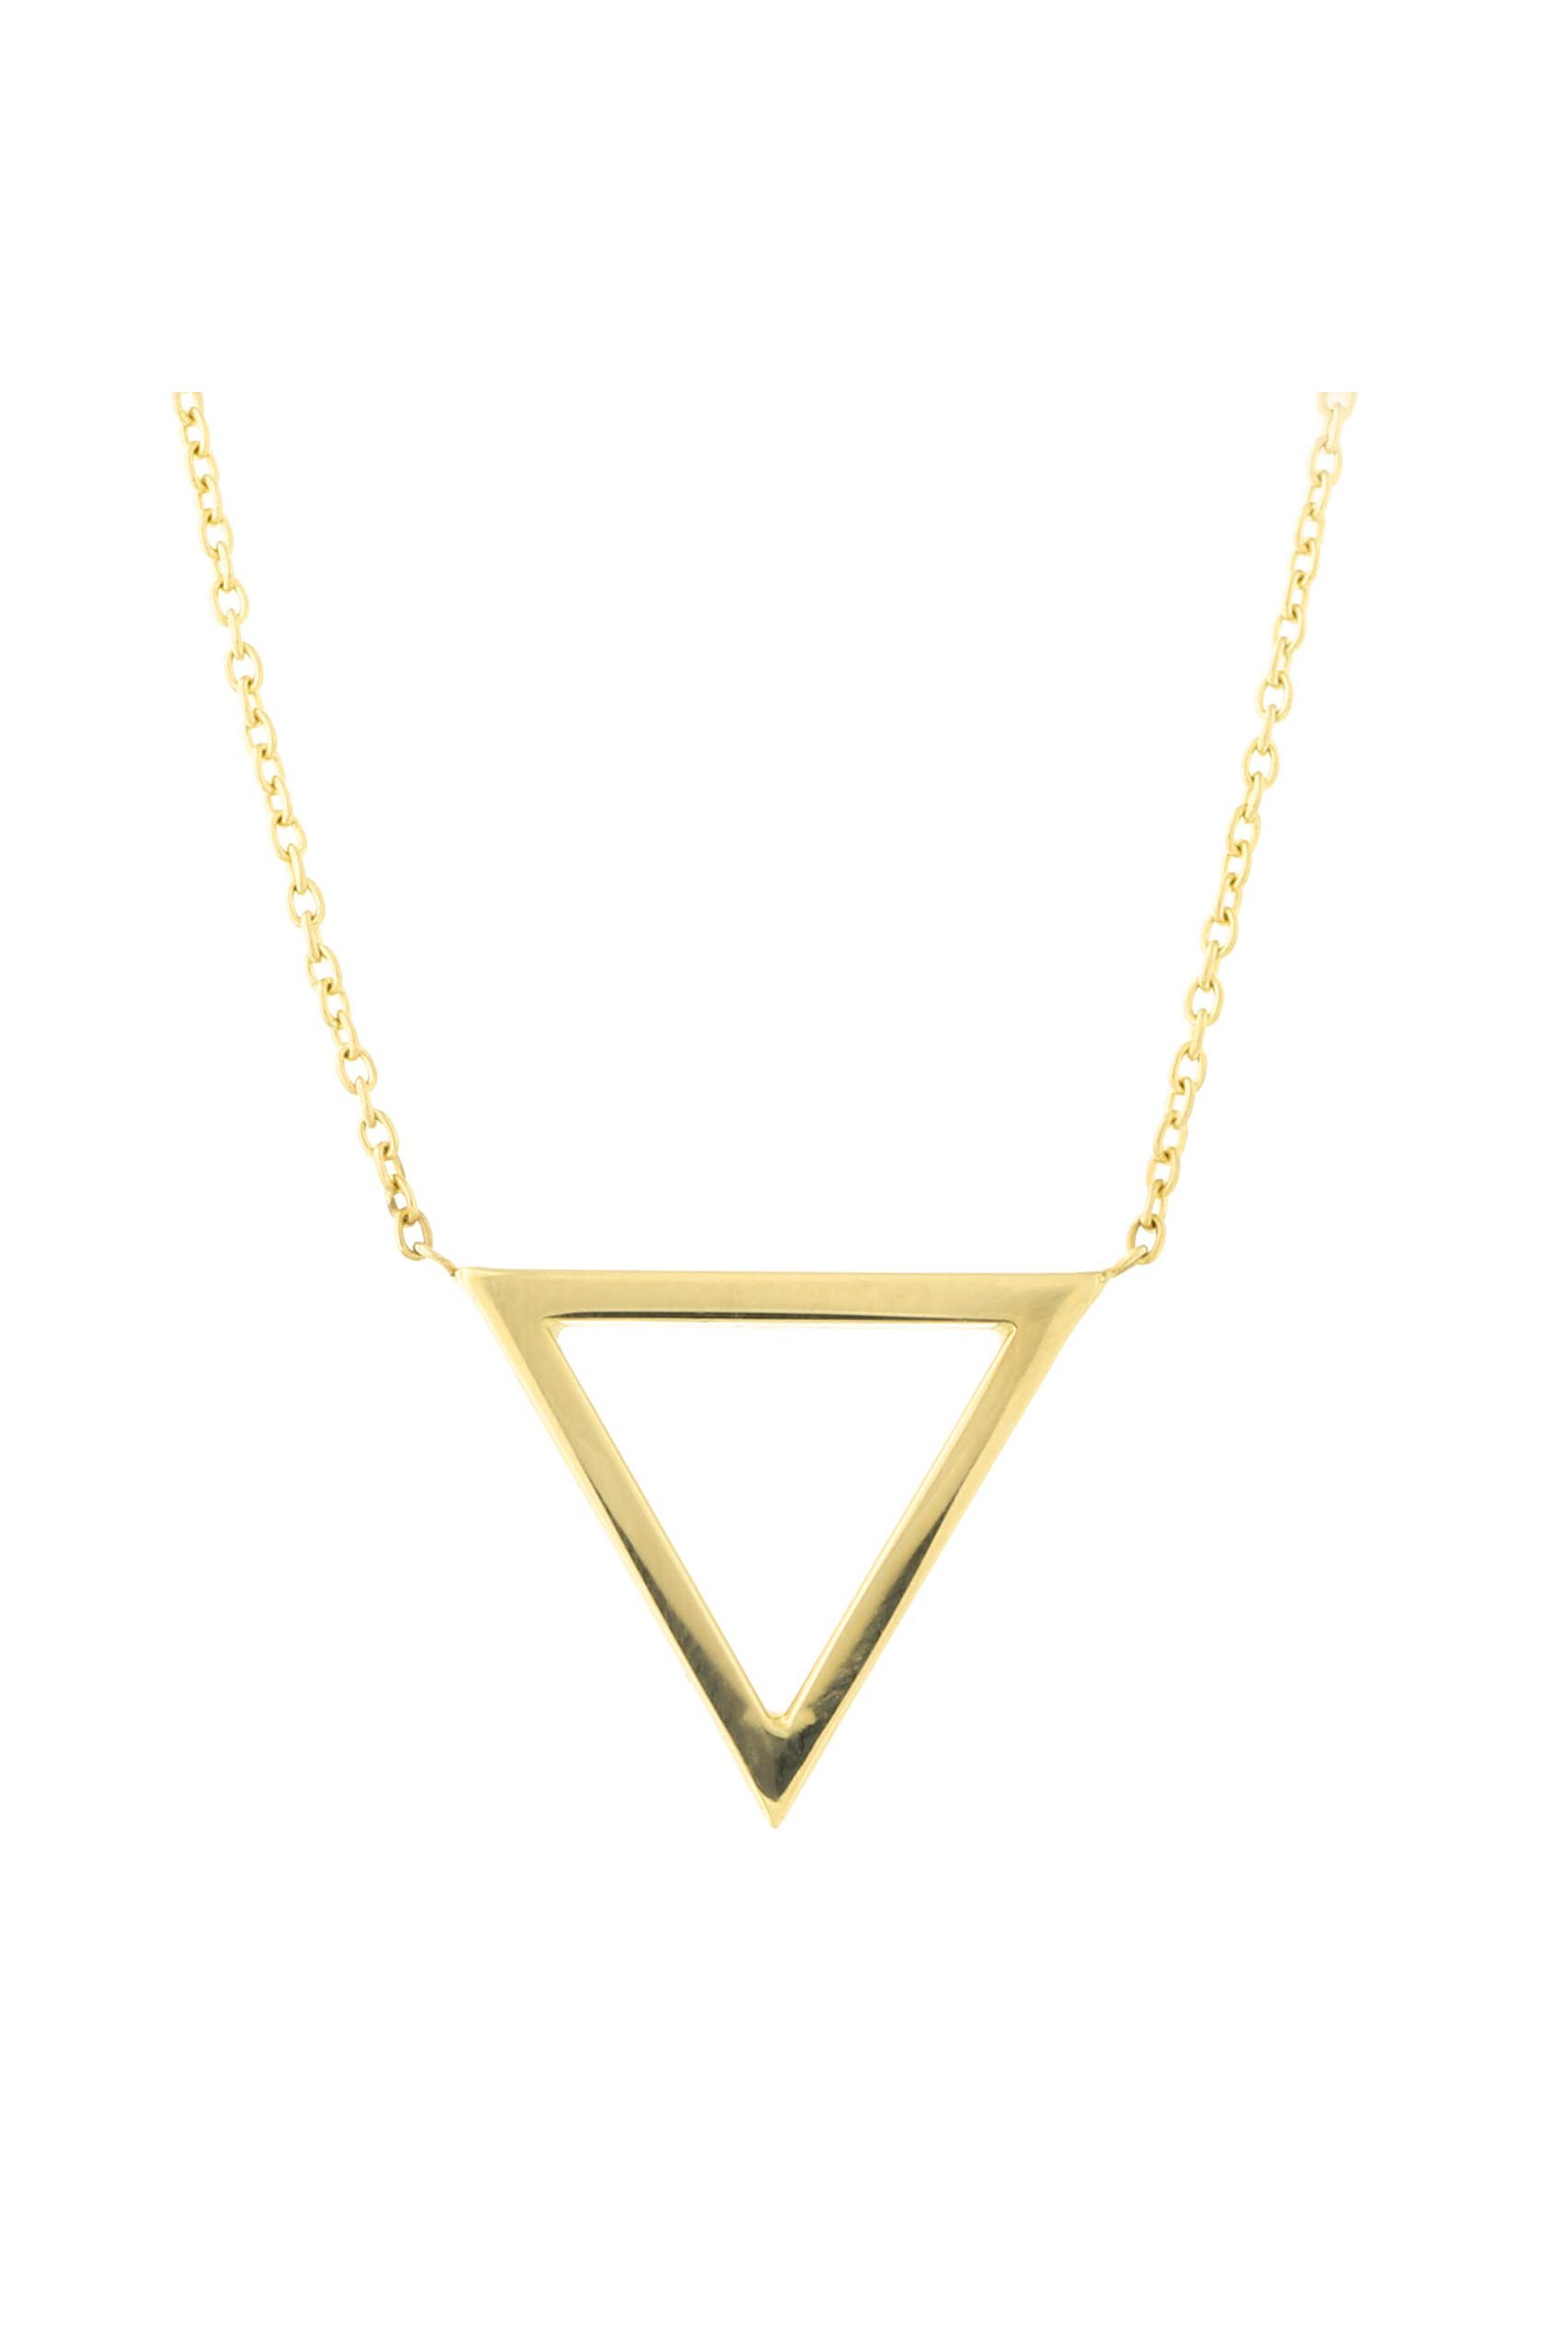 14K Yellow Gold Yatch Pendant on an Adjustable 14K Yellow Gold Chain Necklace